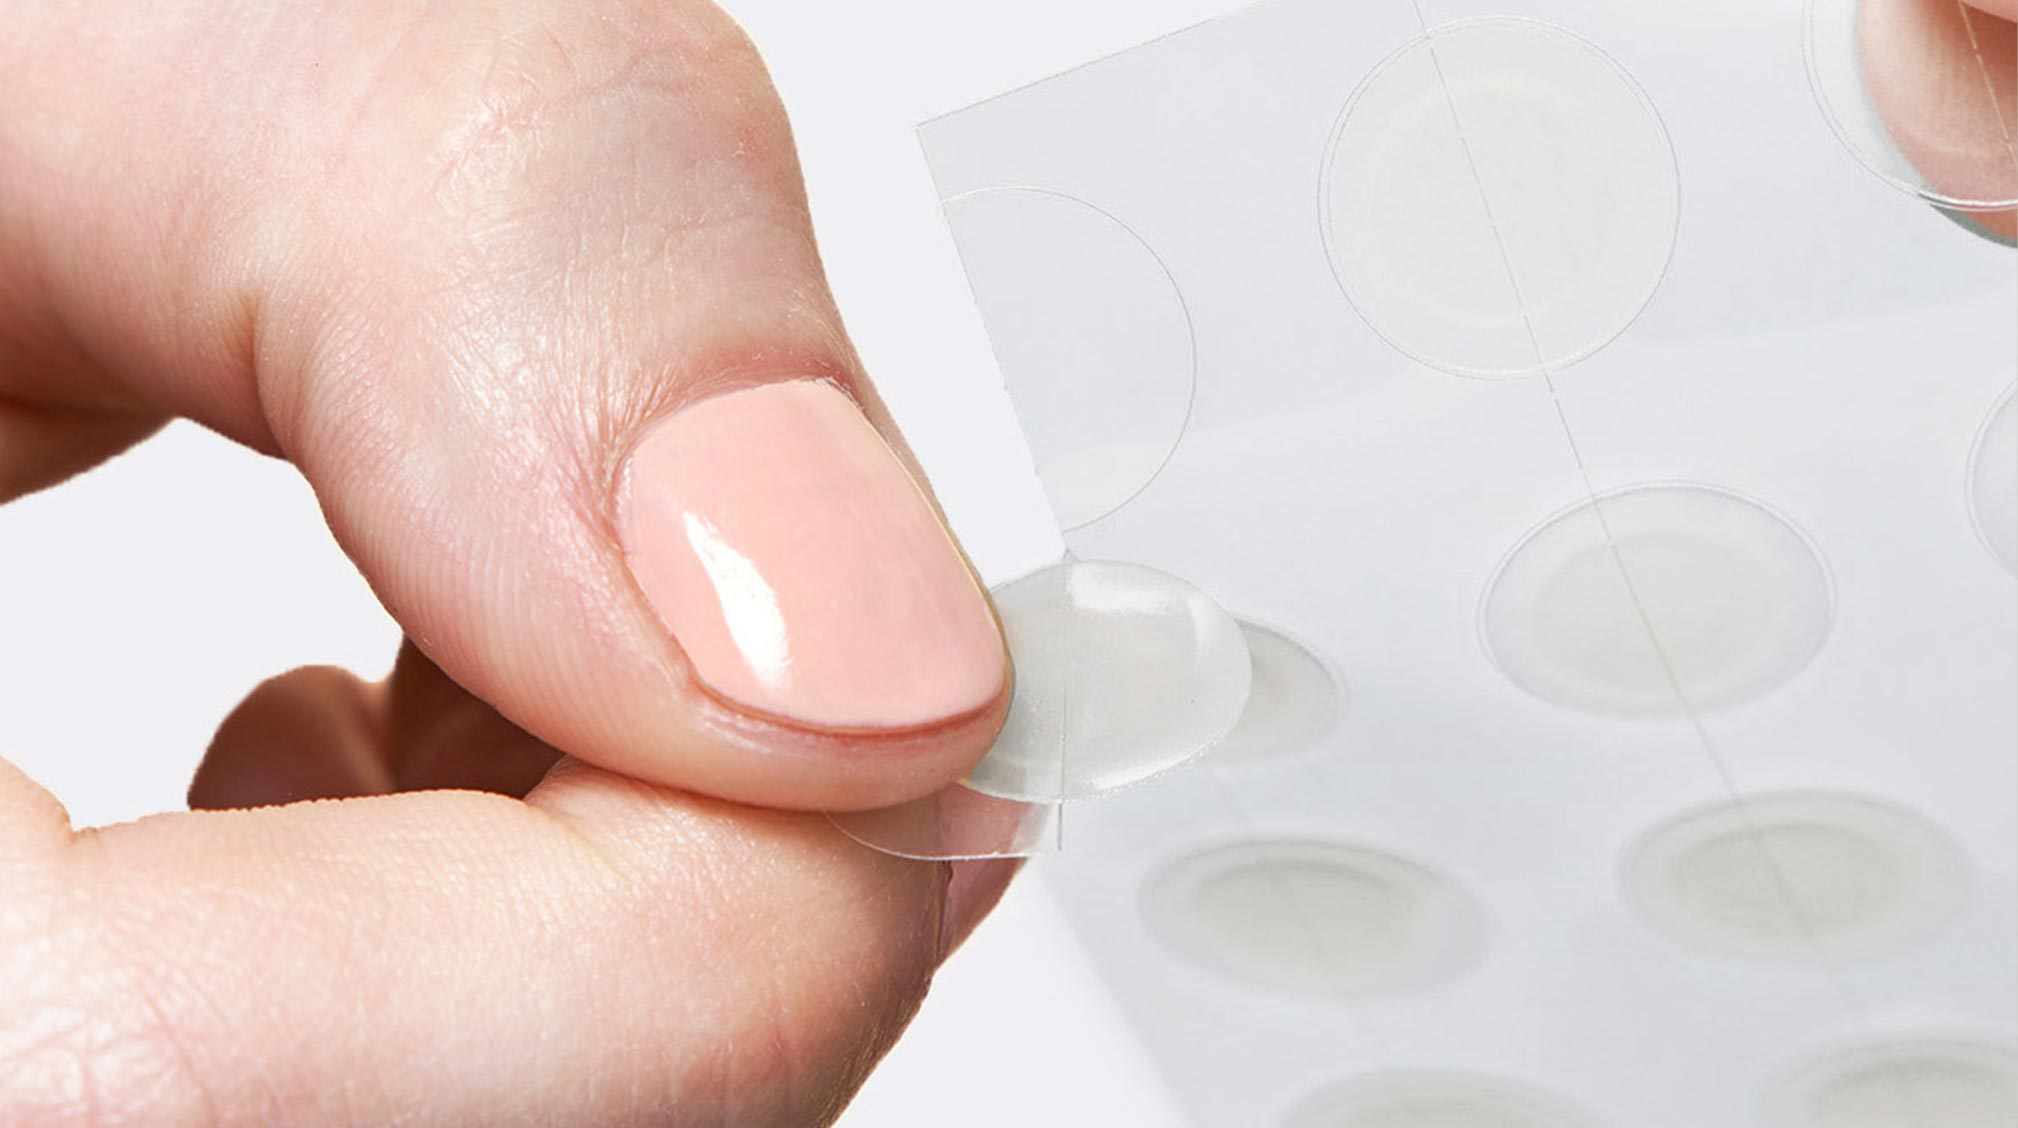 Here's How to Use a Pimple Patch